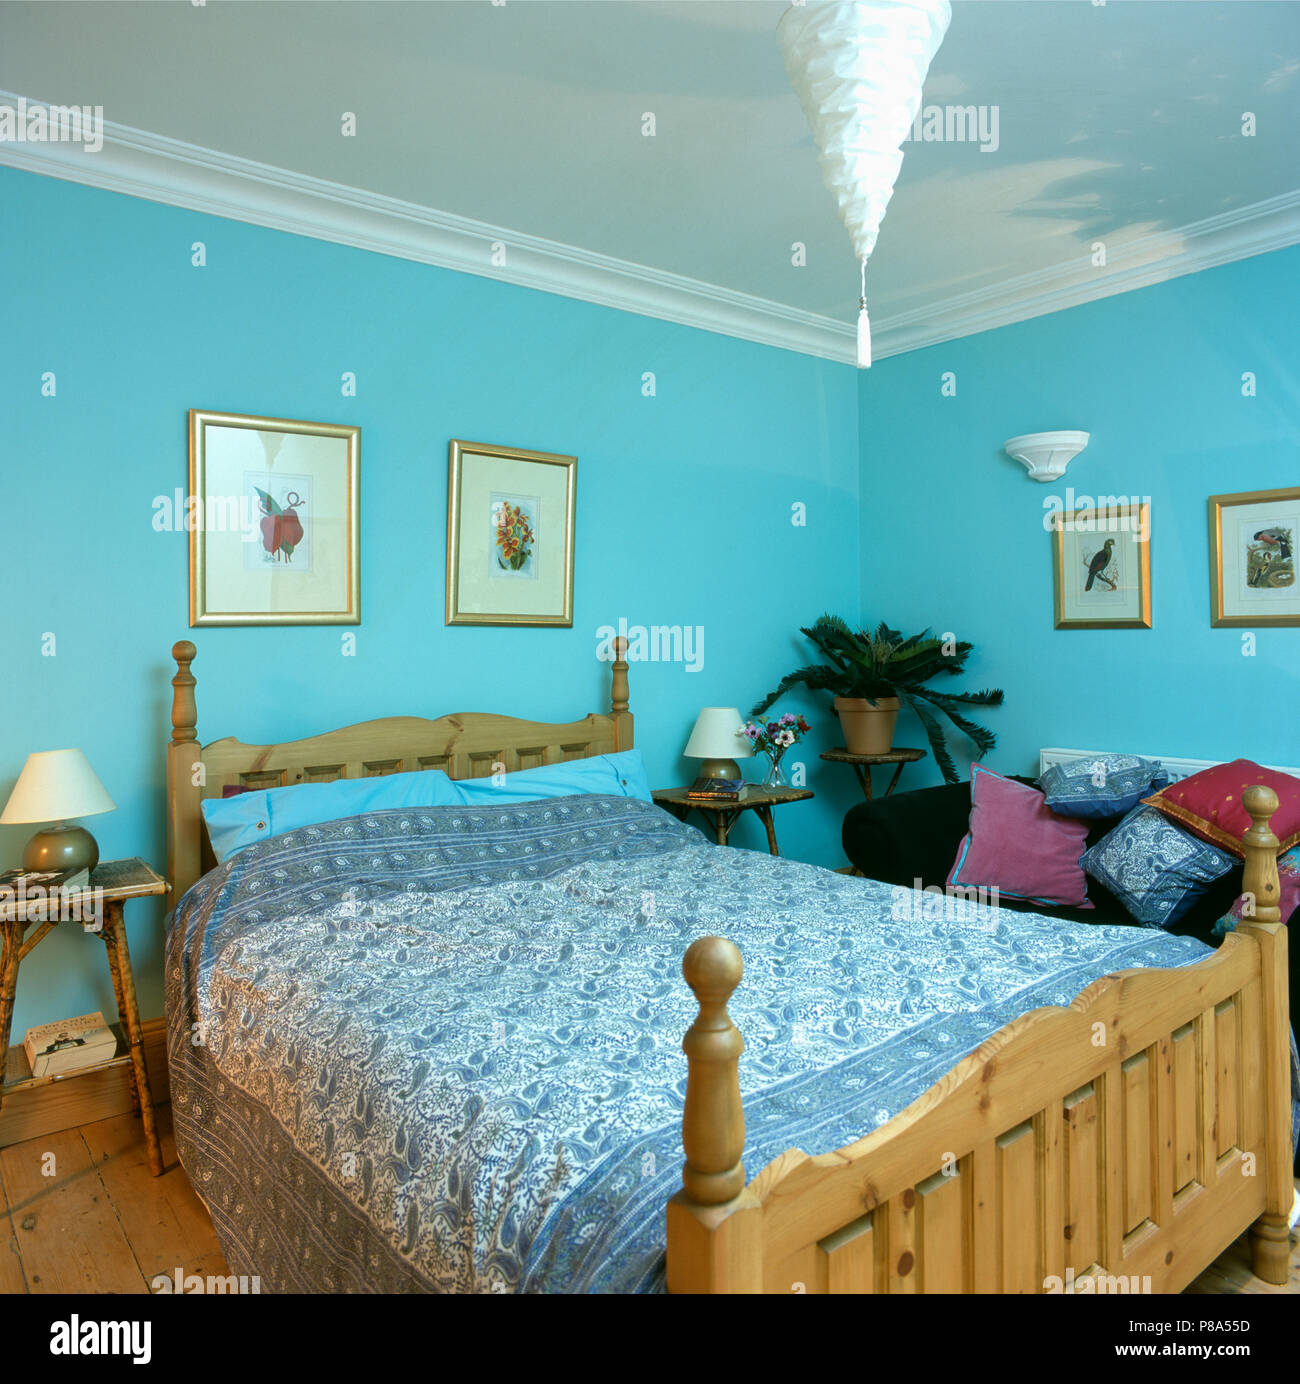 Blue+white Paisley bedcover on pine bed in pastel turquoise bedroom ...